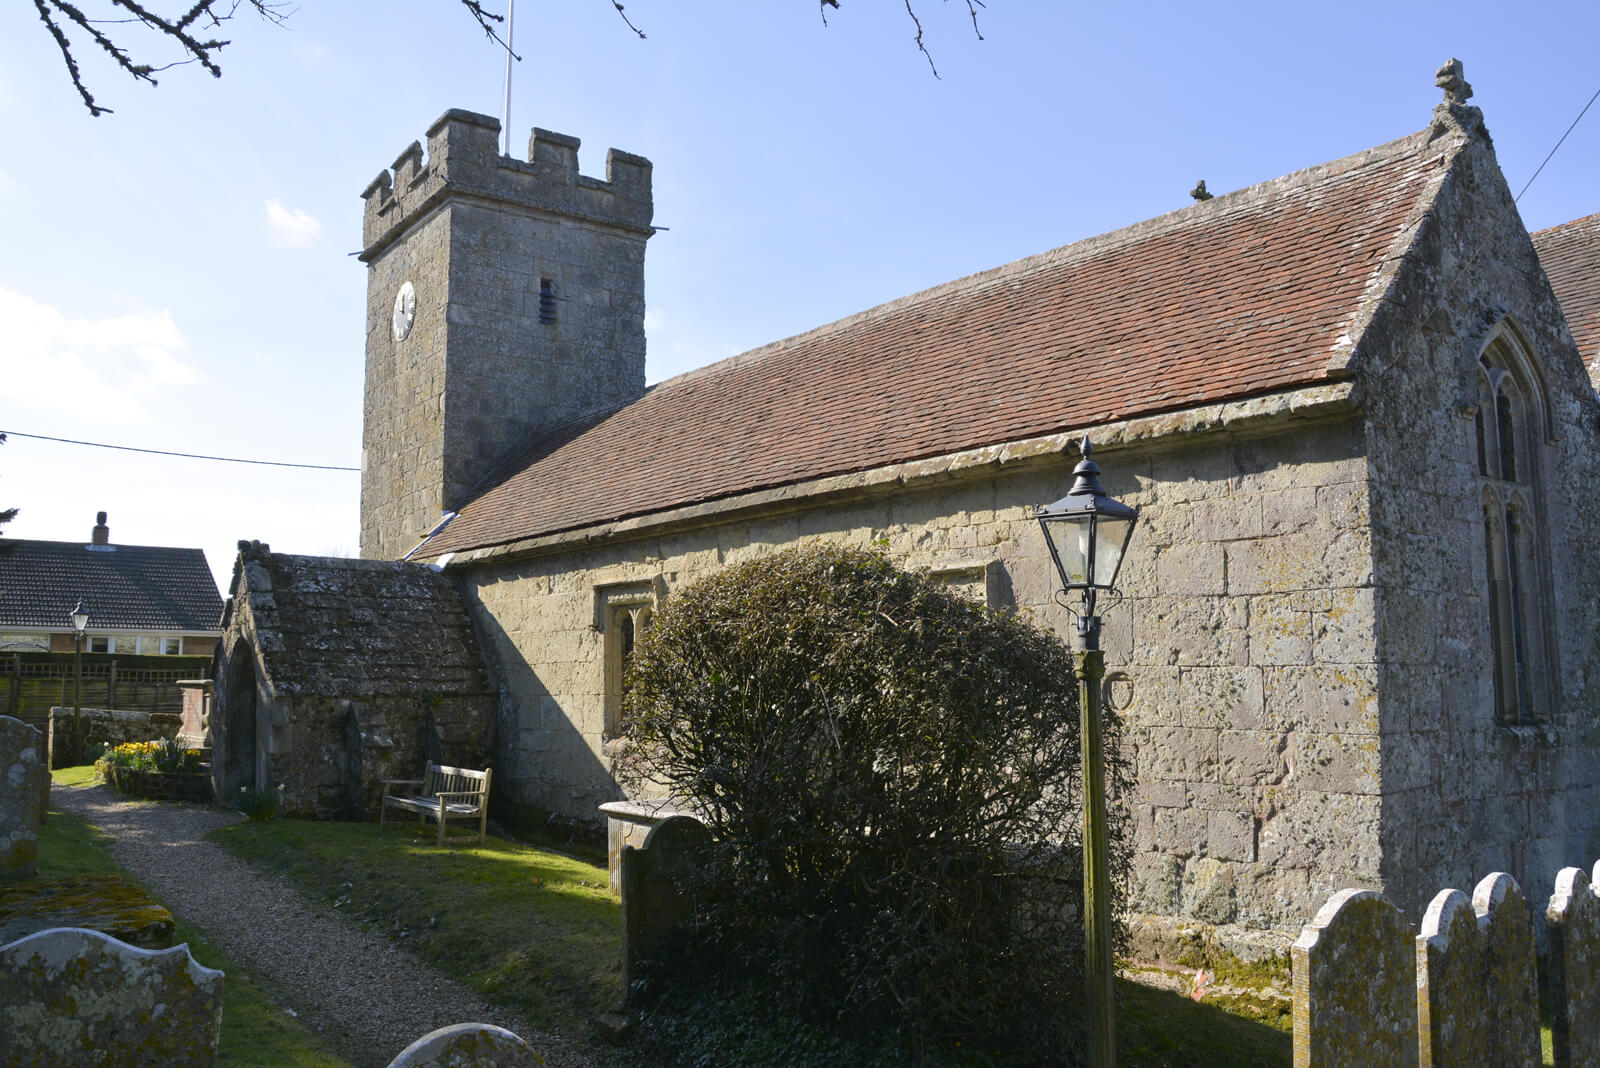 20150322 DSC_0600 Whitwell Church